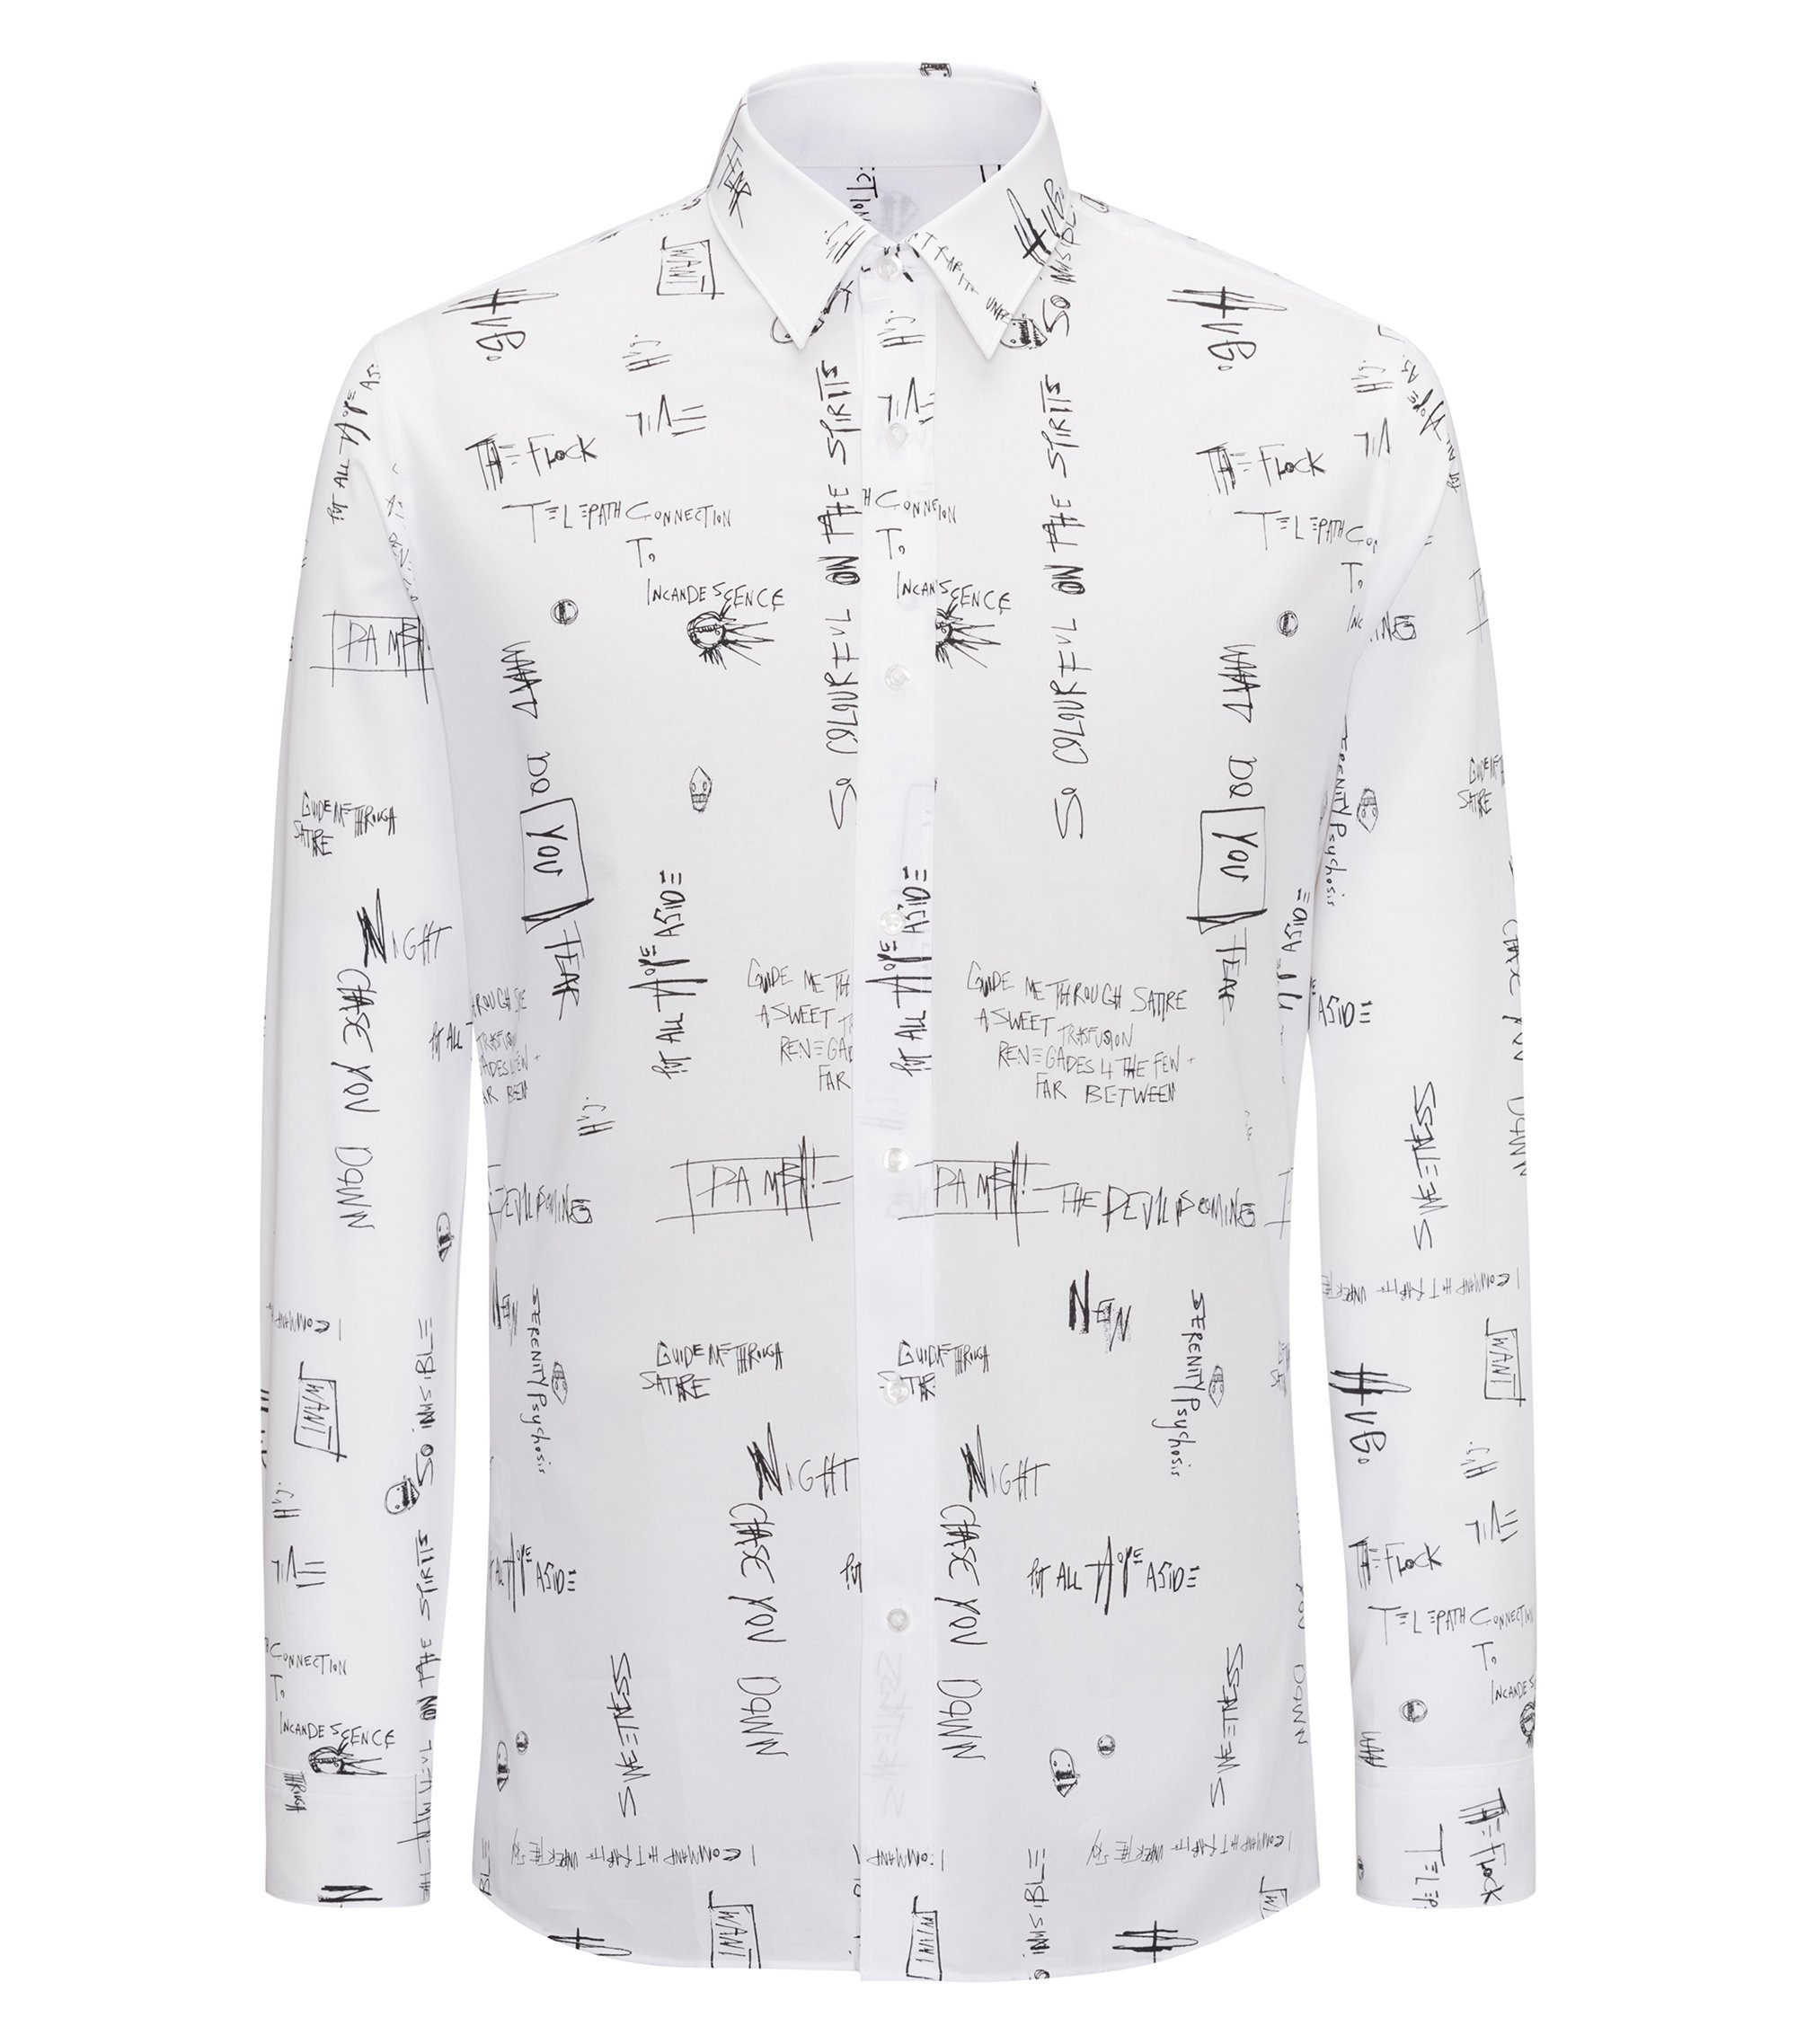 Slogan-printed cotton shirt in an extra-slim fit, White